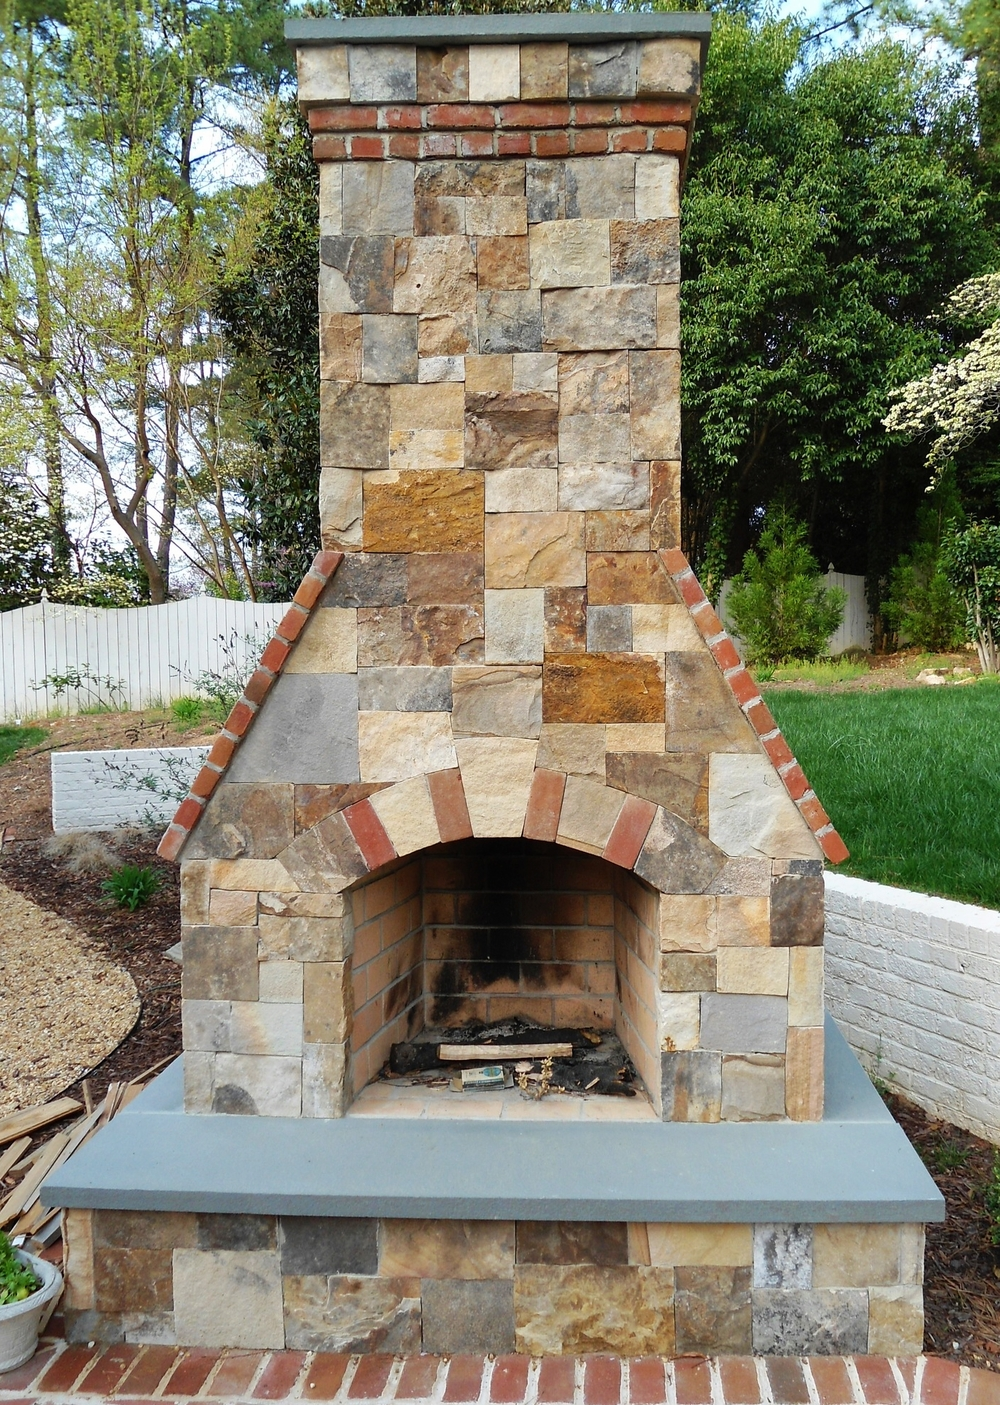 San veneer, bluestone and brick fireplace